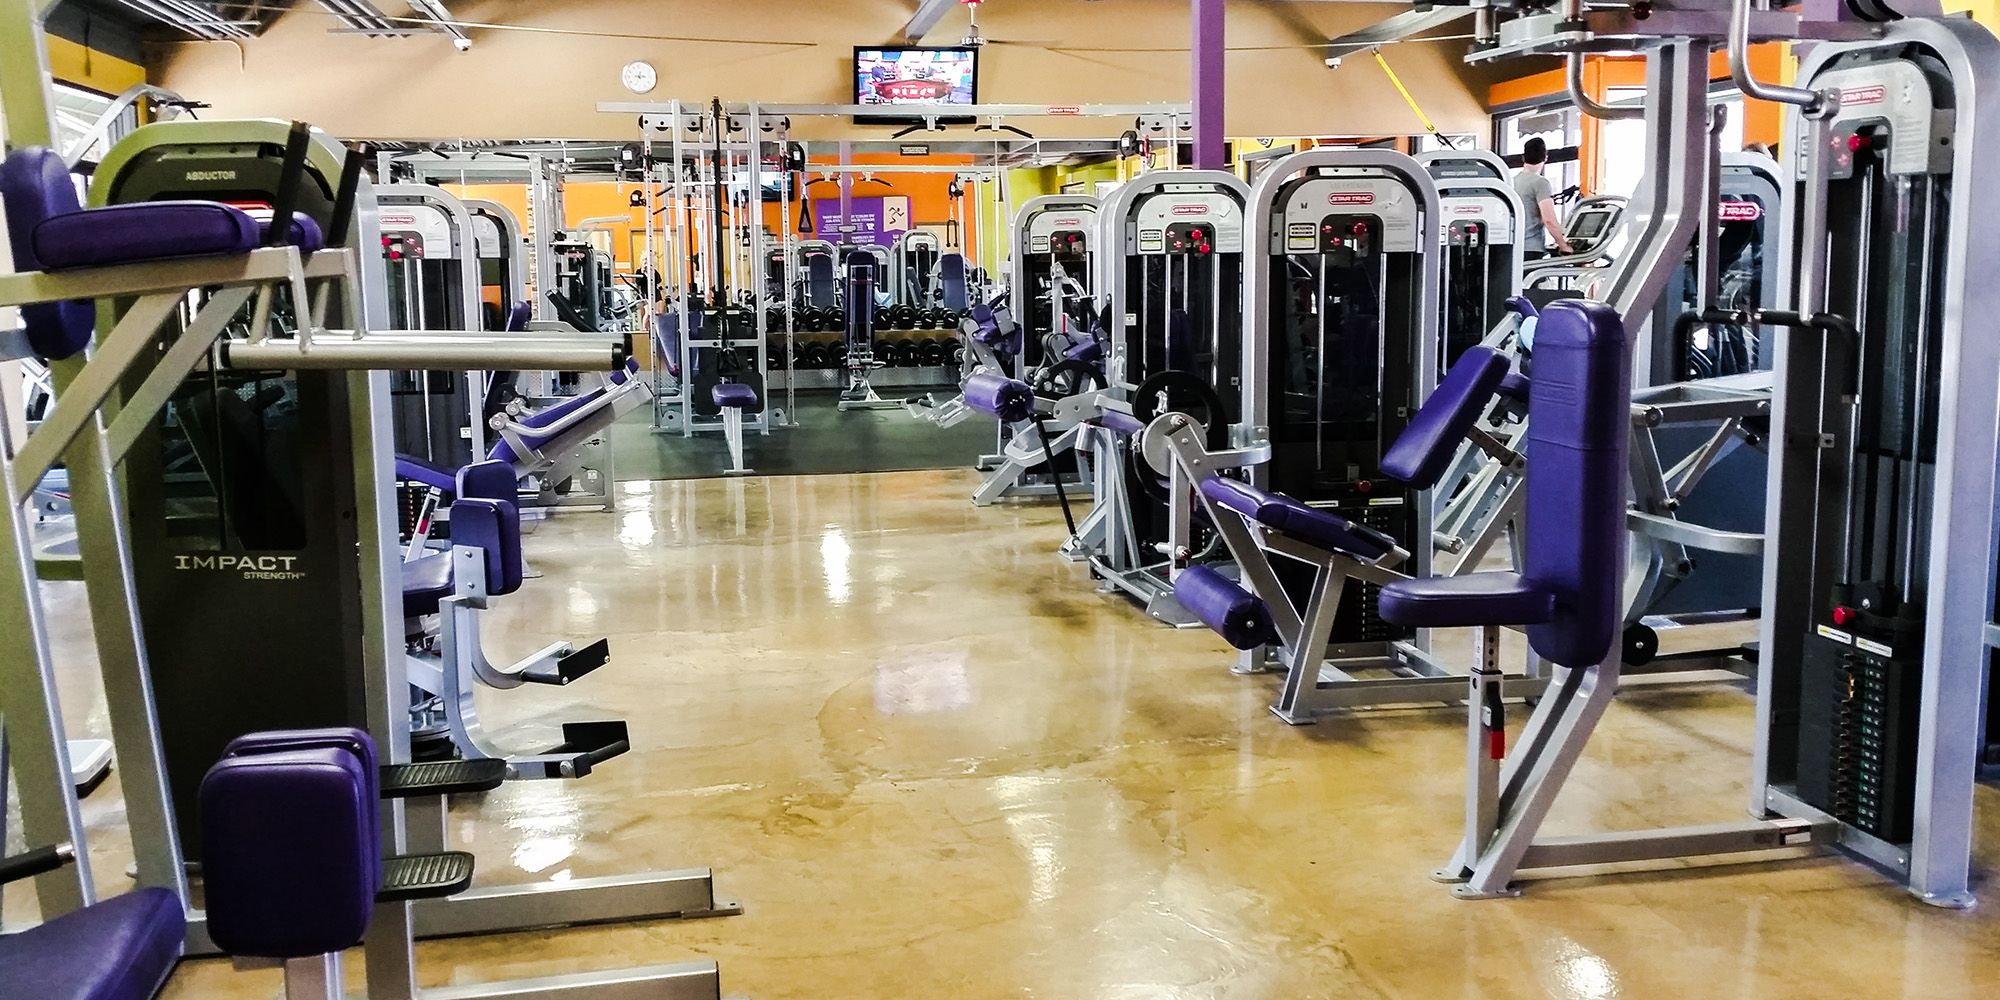 anytime-fitness-4